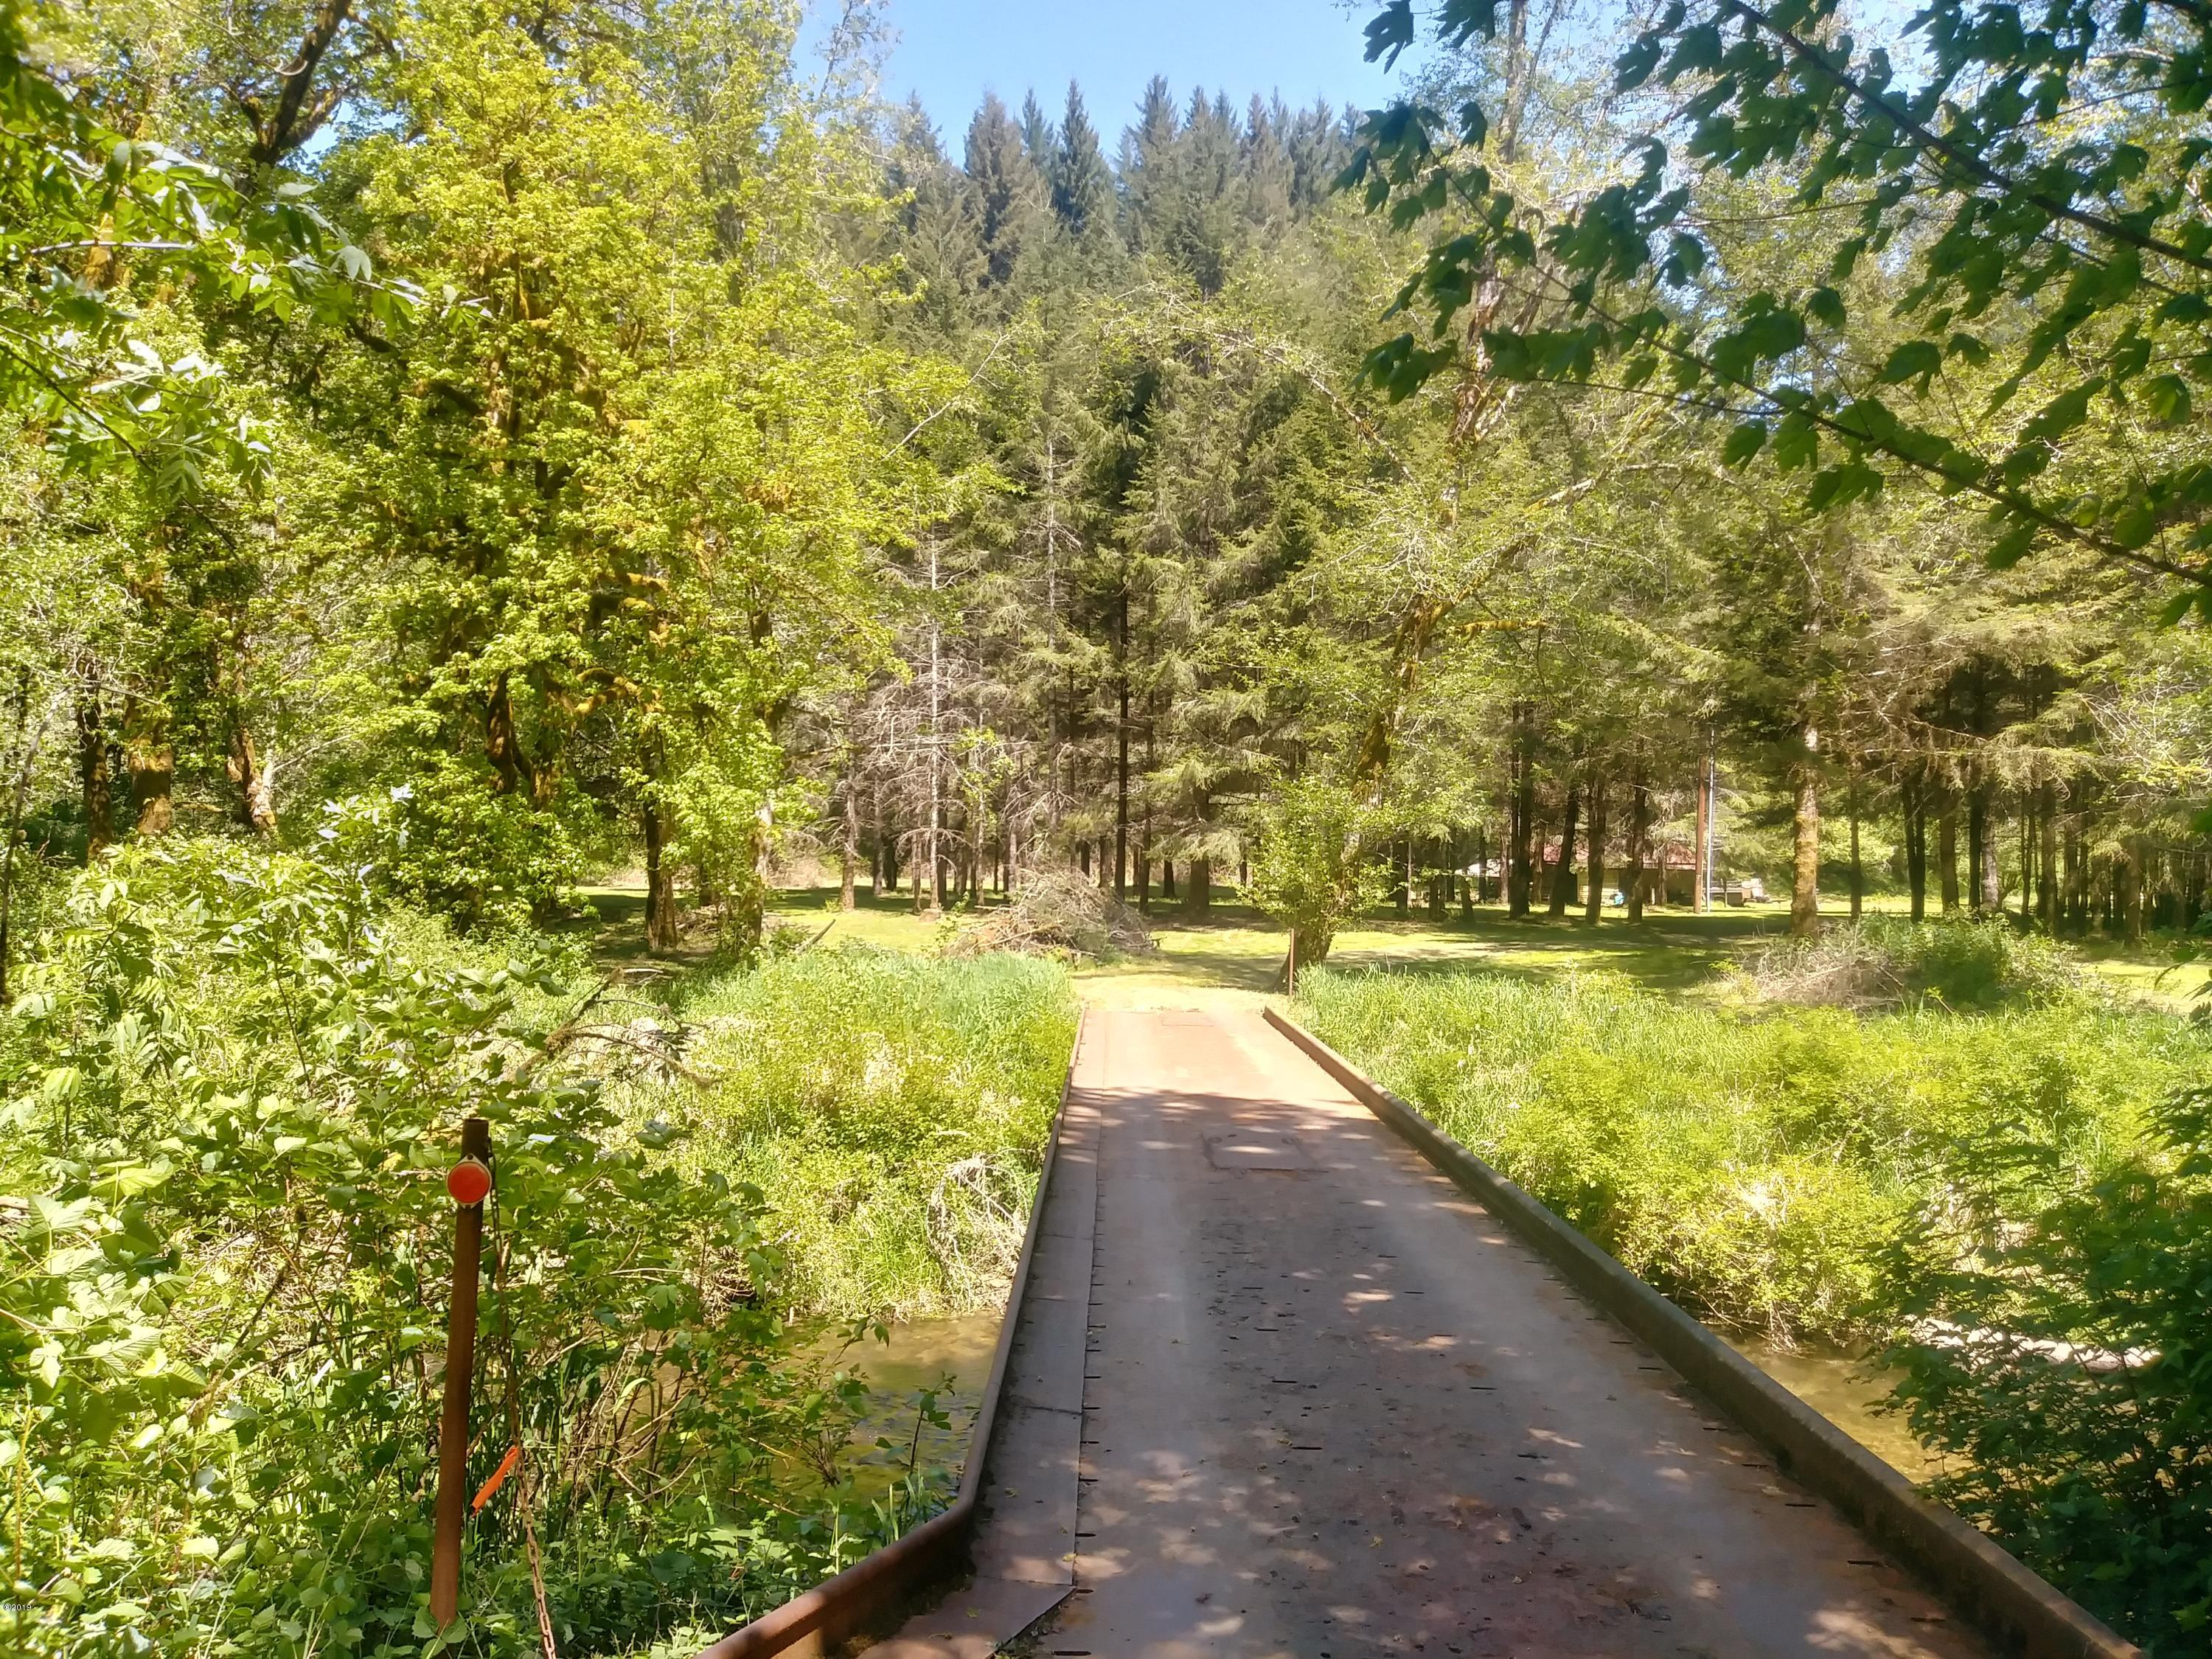 584 E Buck Creek Rd, Tidewater, OR 97390 - Driveway over the Creek